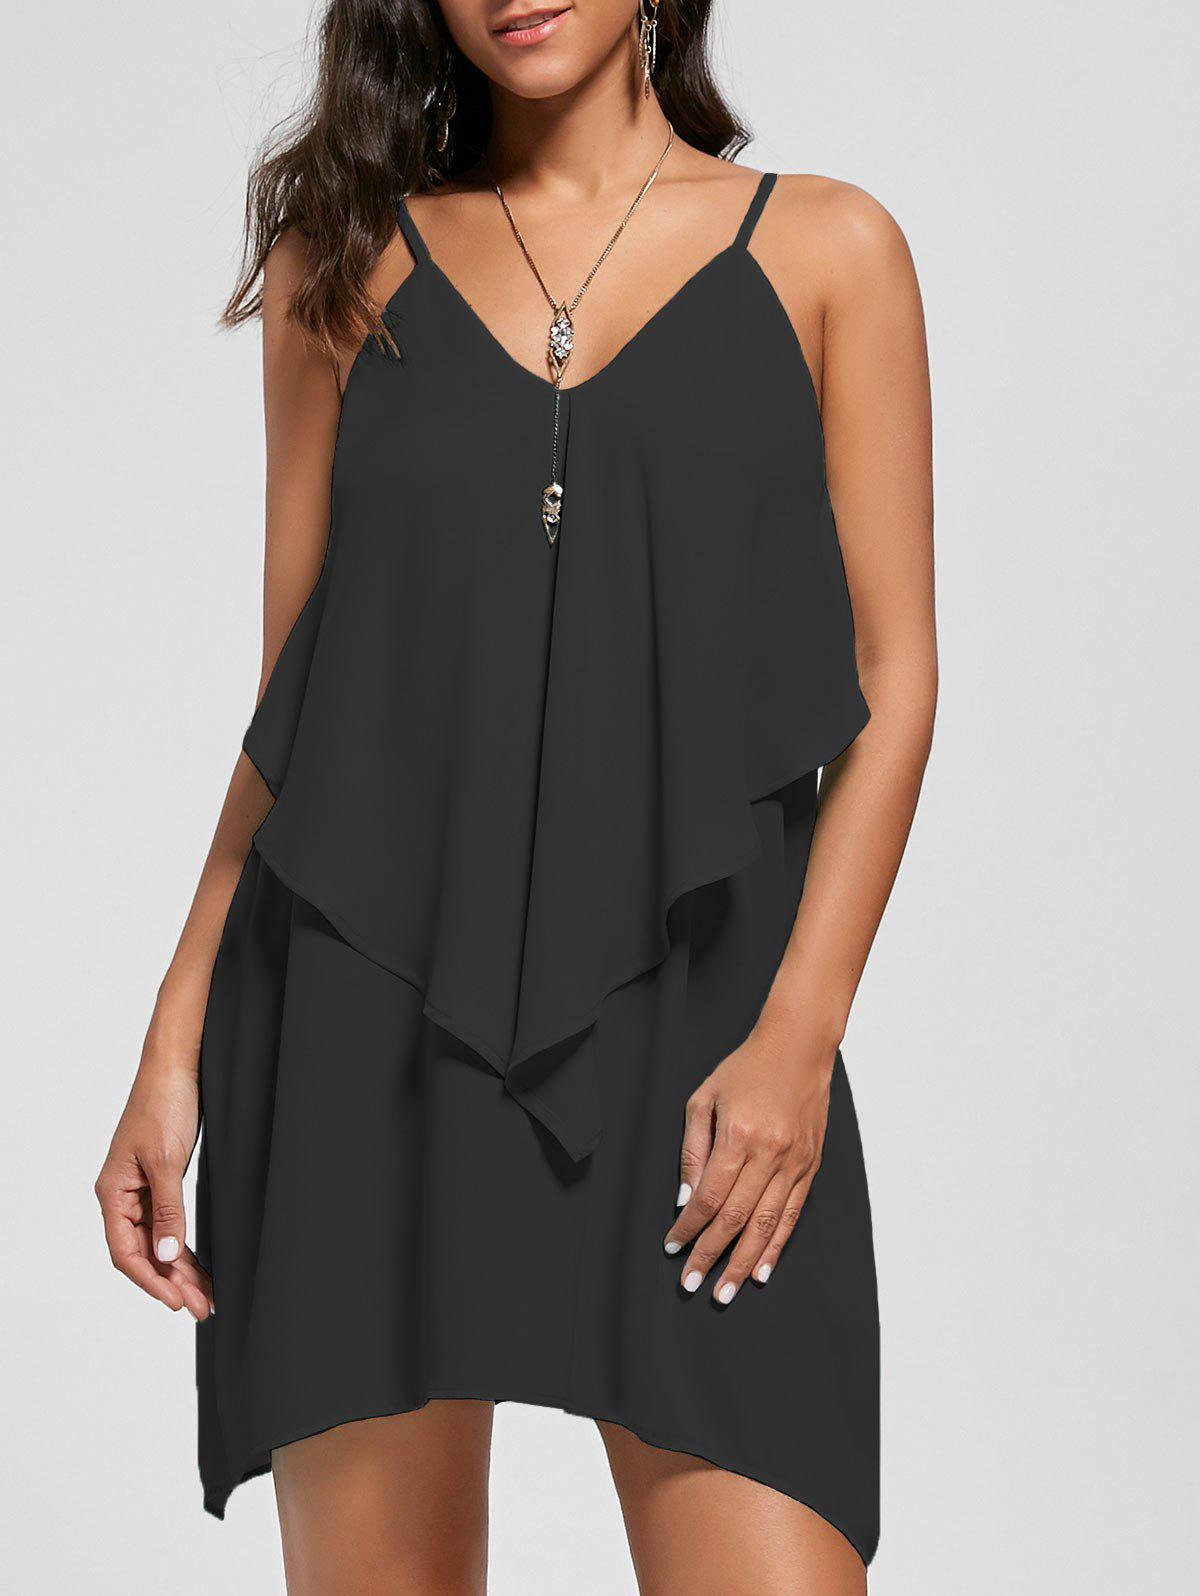 Overlay Flowy Mini Slip Dress -